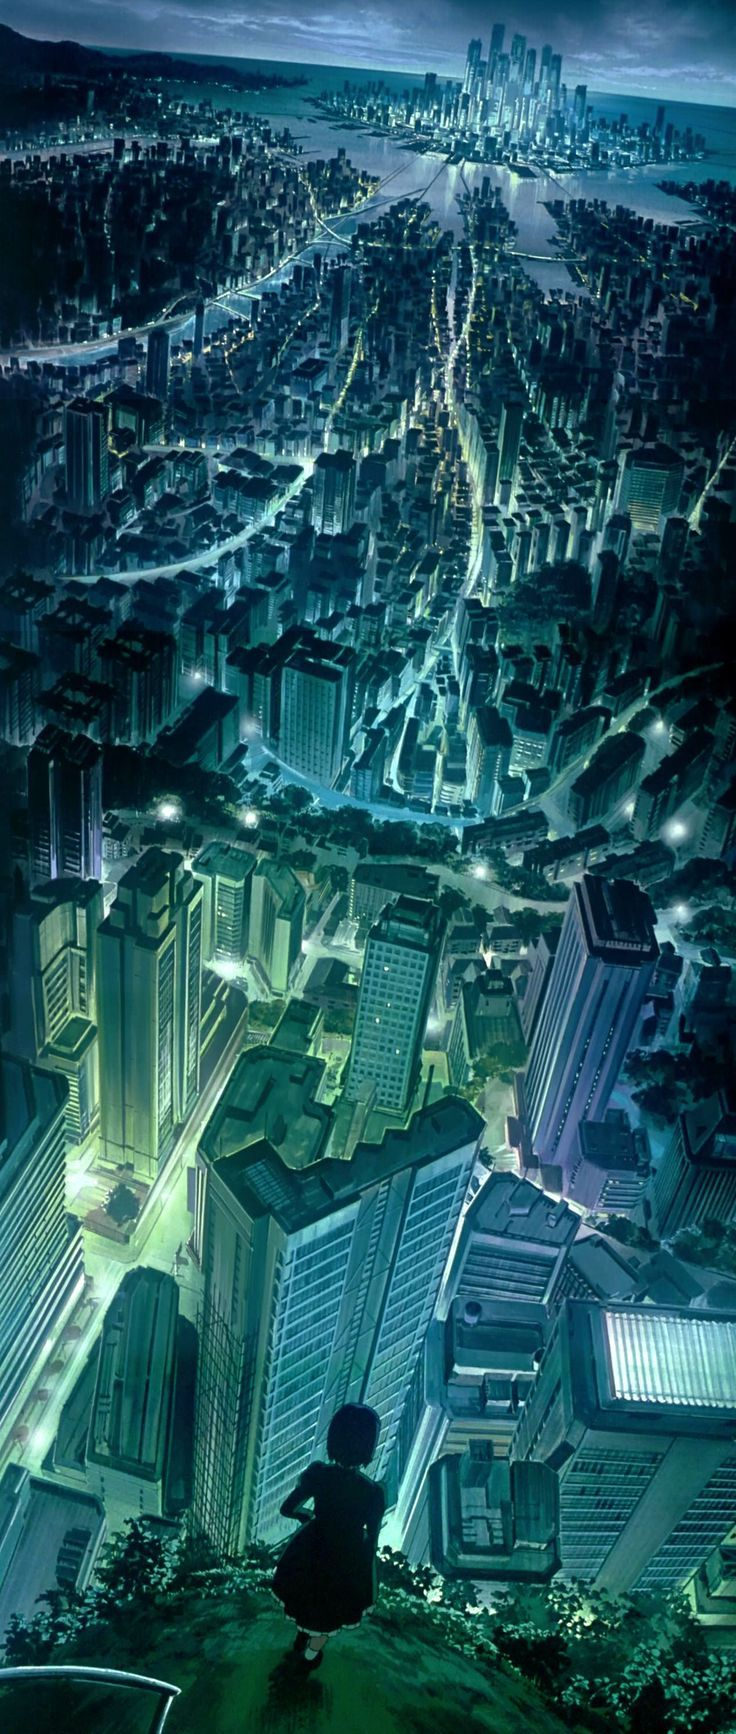 Looking over all #illustration Concept art environment scenes, created for videogames, artworks from conceptartworld.com and artstation. Outdoor environment illustration, digital painting, speed painting, matte painting cityscape in composition with a futuristic modern city scenery, urban district, street, slums or city ruins and  mountain scenery, for design reference or inspiration. Futuristic city eagle eye bird eye view concept art.